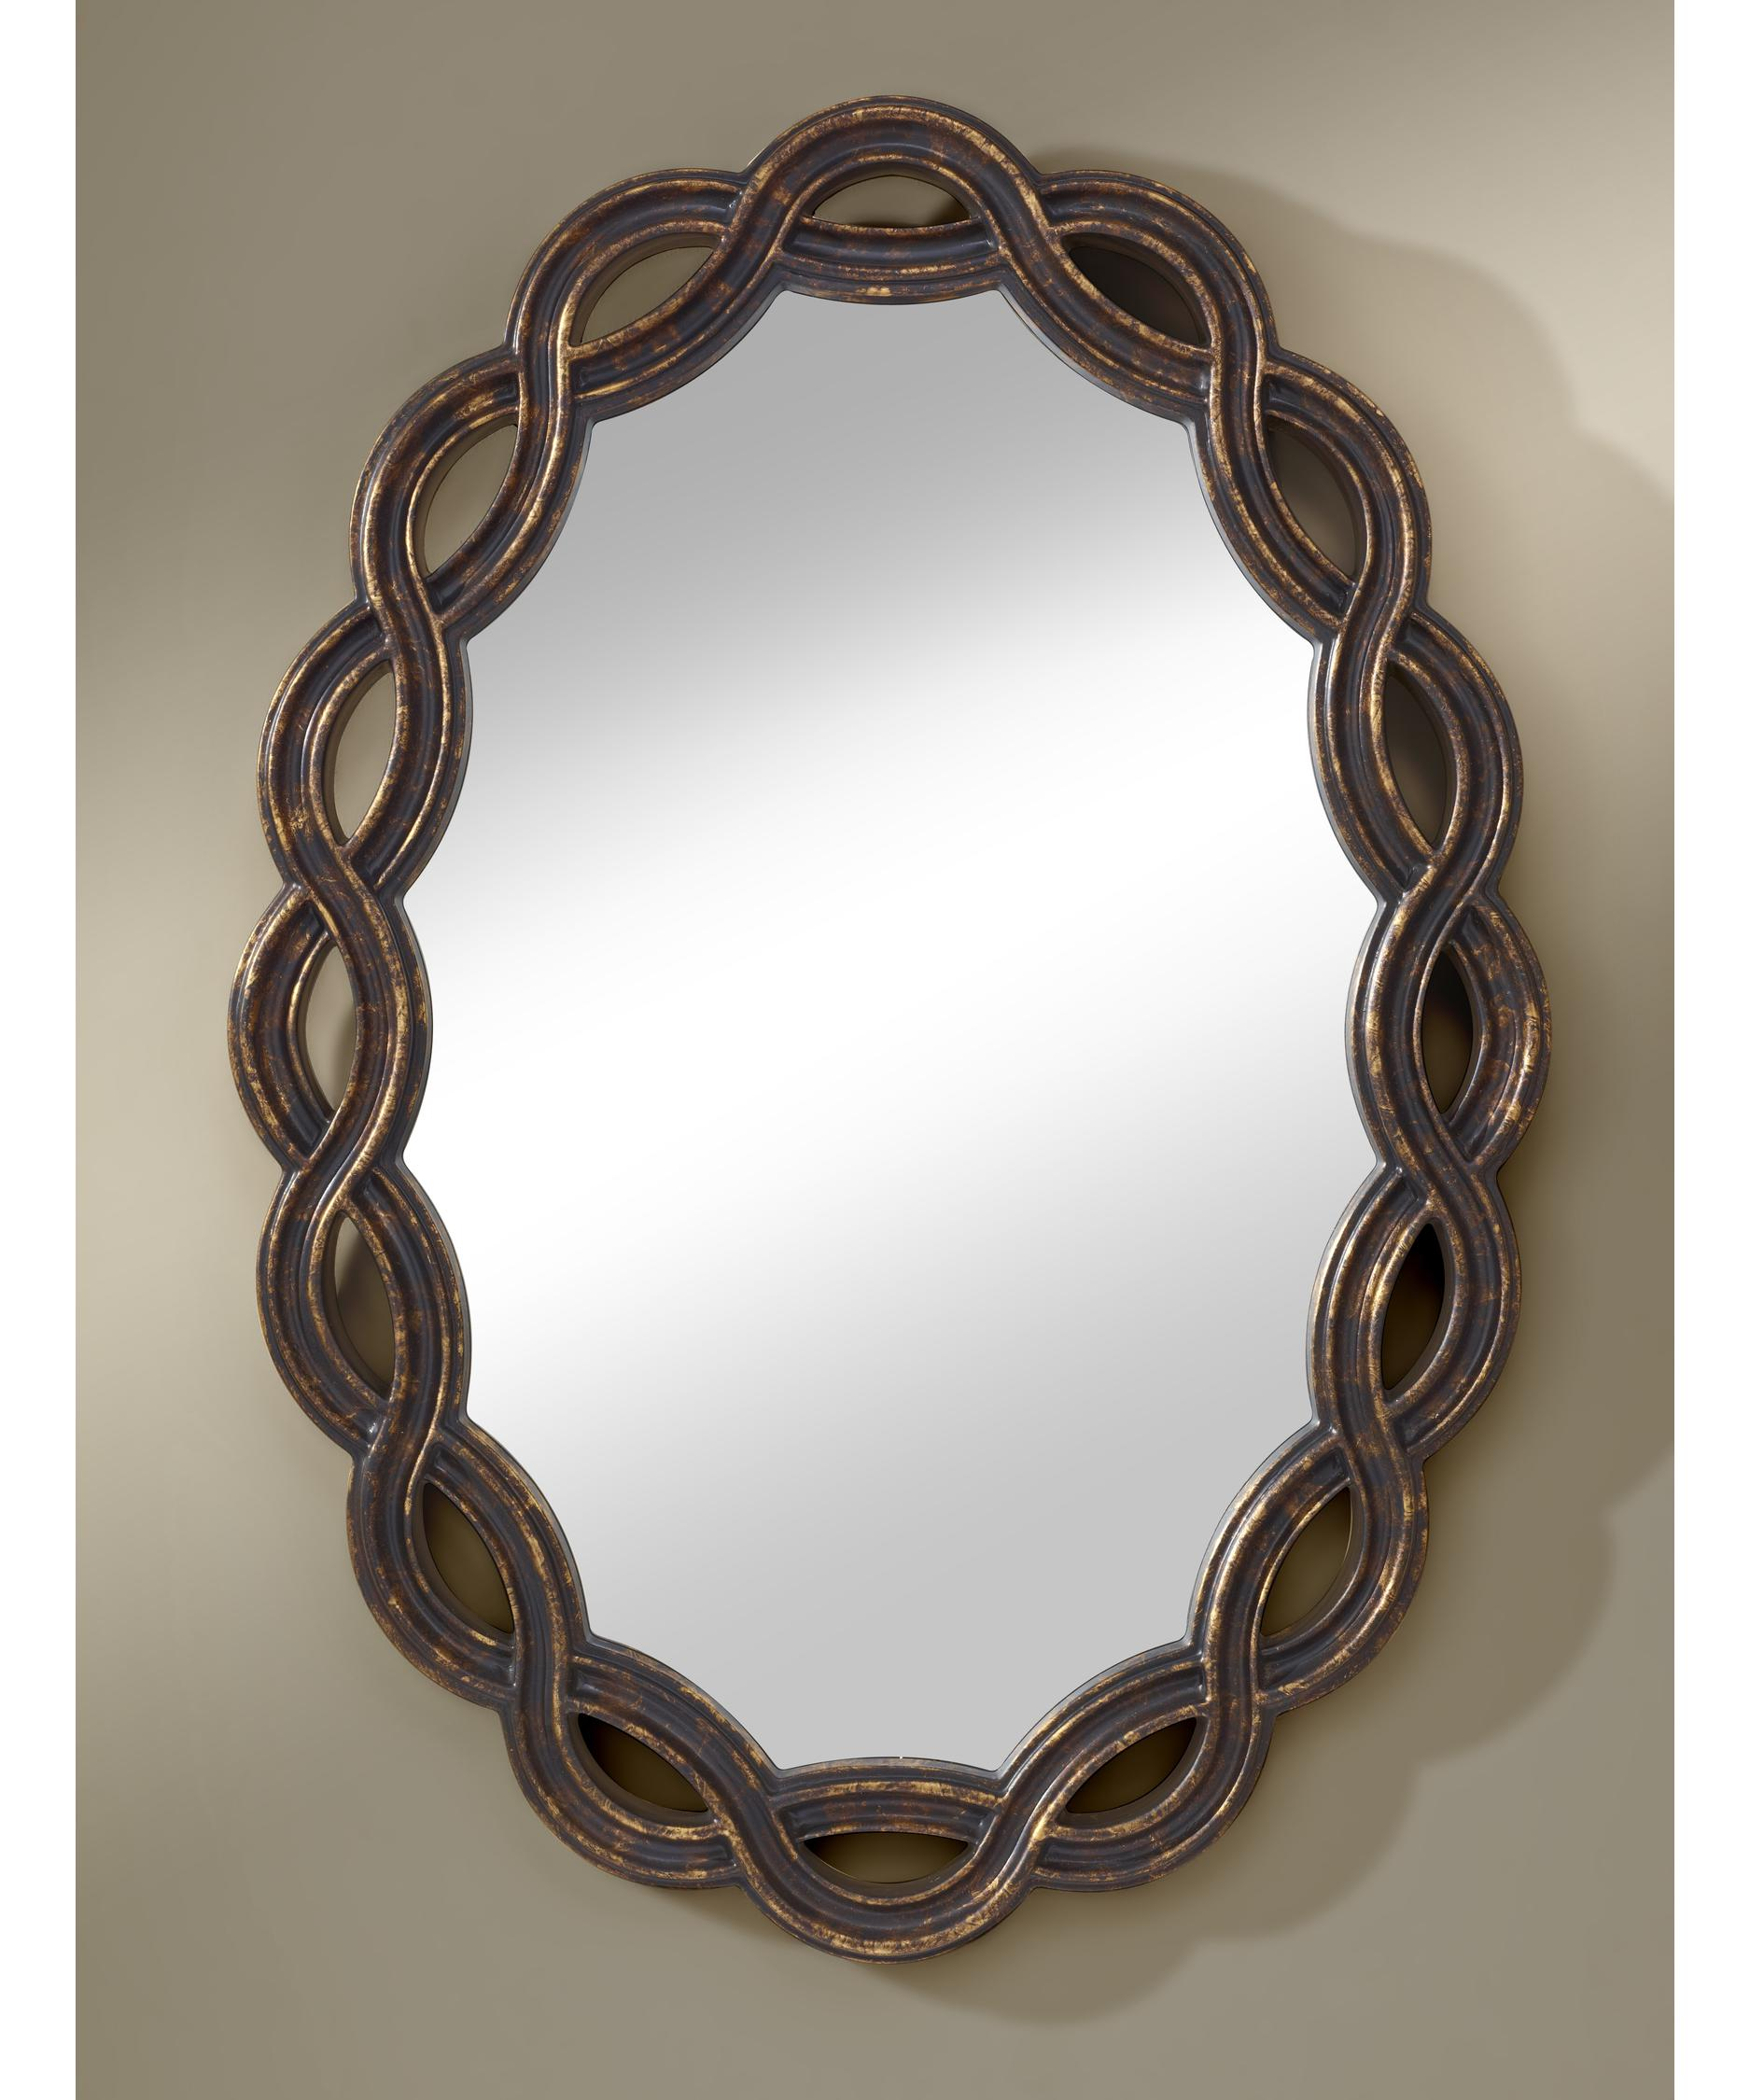 Murray Feiss Mr1163 Charmed Wall Mirror Capitol Lighting 1